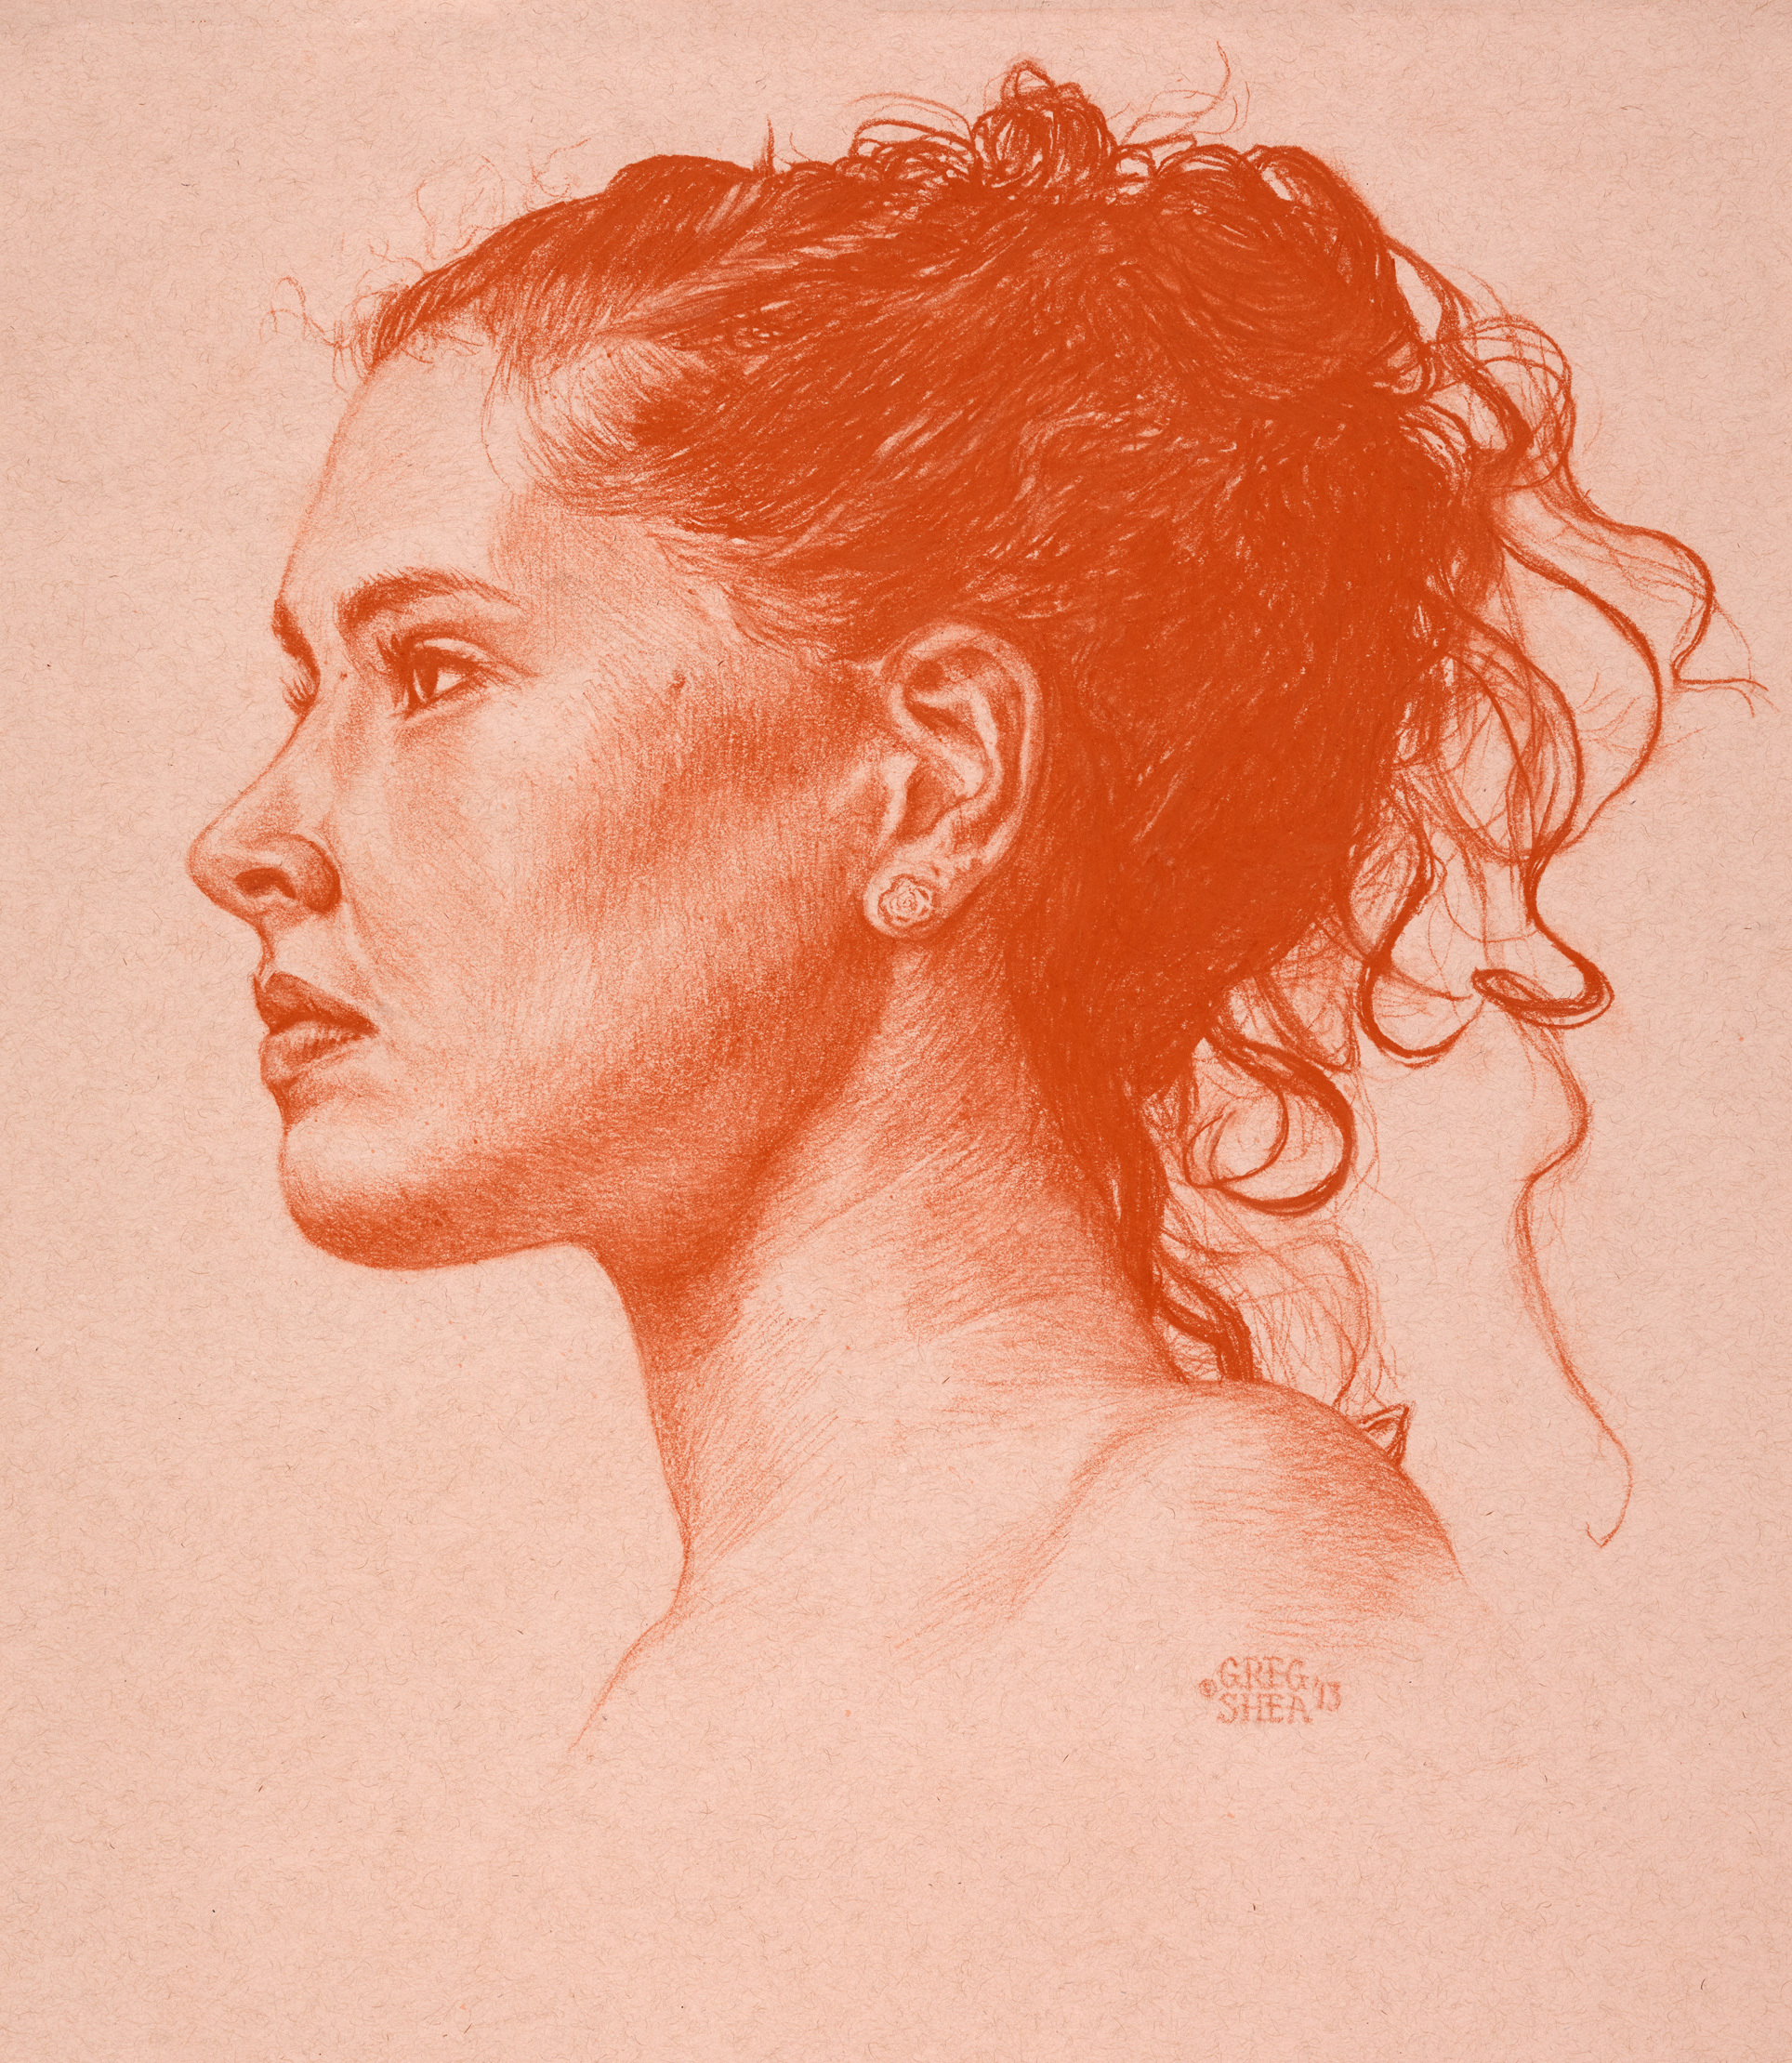 "Cara  , 2013. Pastel pencil on tan toned paper, 13 1/2 x 15 1/2"". Available for purchase."